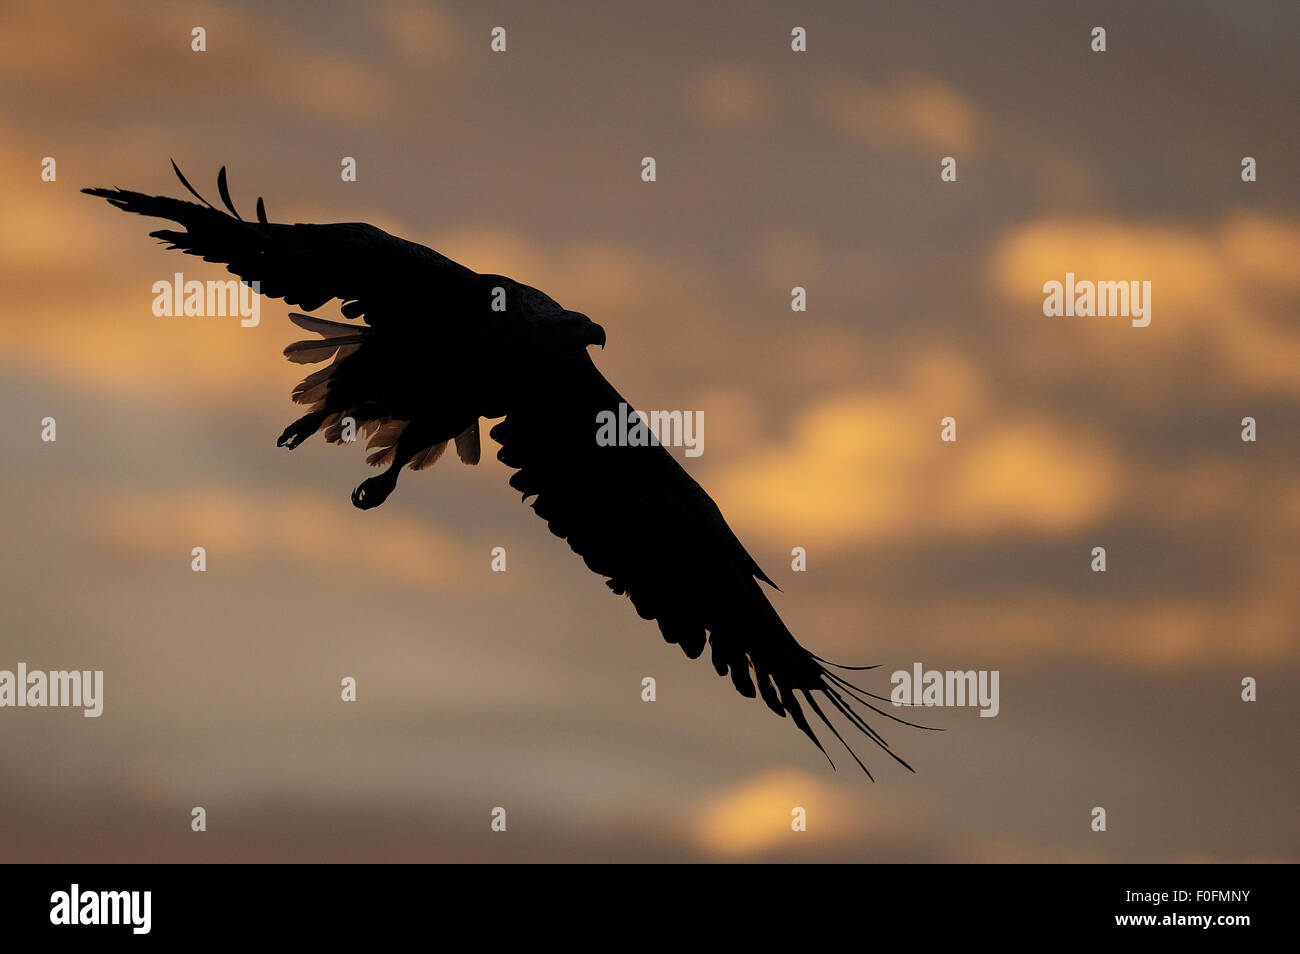 White tailed sea eagle (Haliaeetus albicilla) in flight, silhouetted, Flatanger, Nord Trøndelag, Norway, August - Stock Image